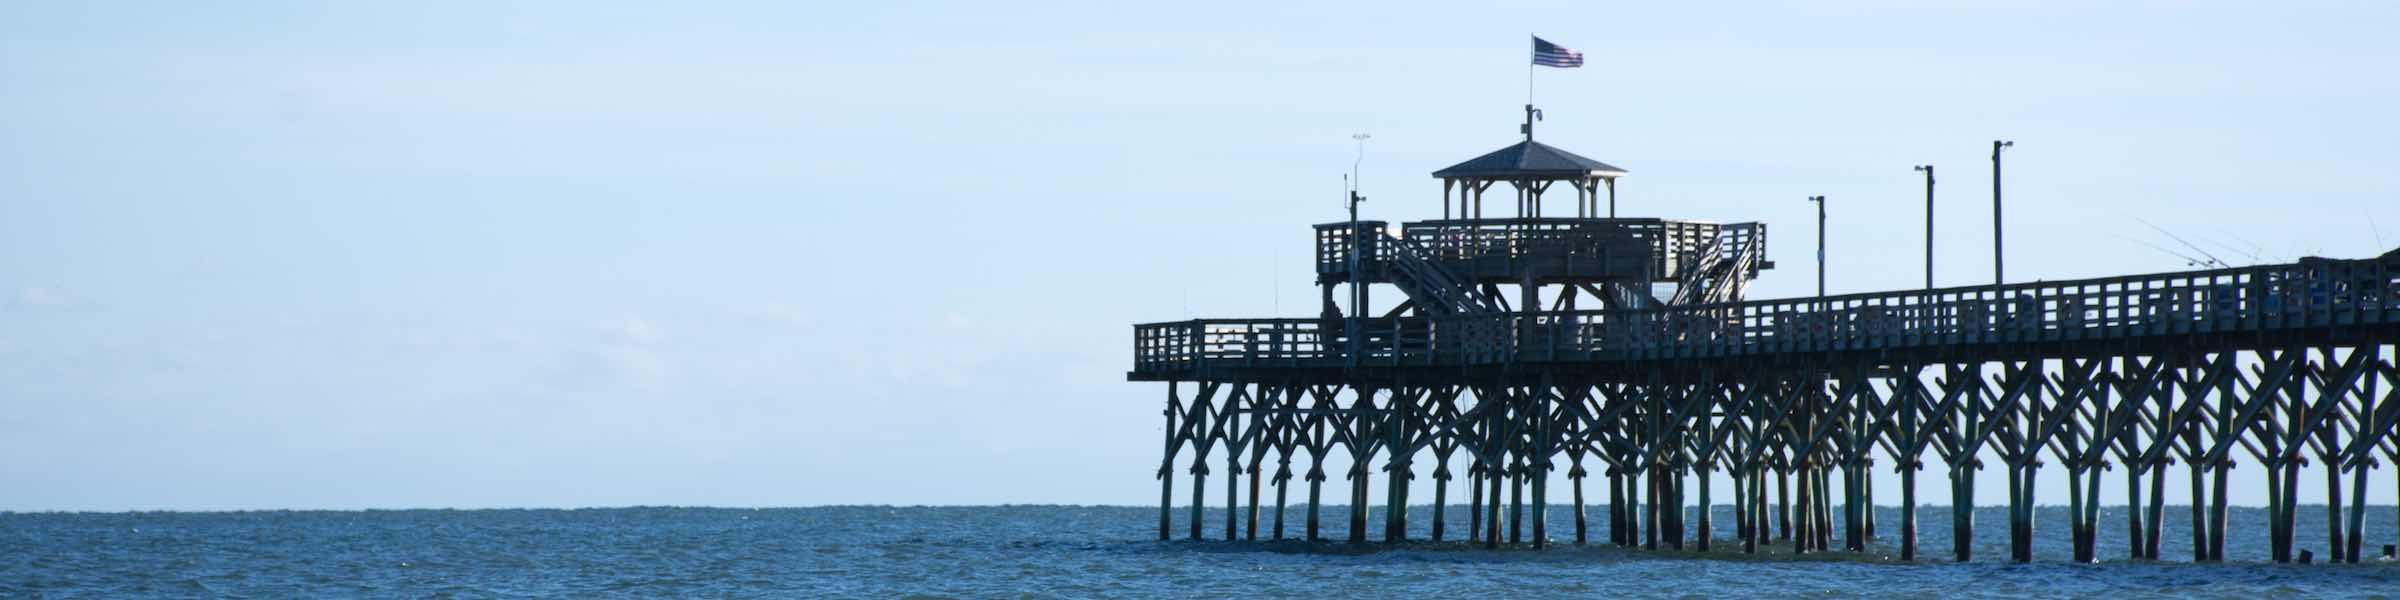 Things To Do in North Myrtle Beach SC in Winter